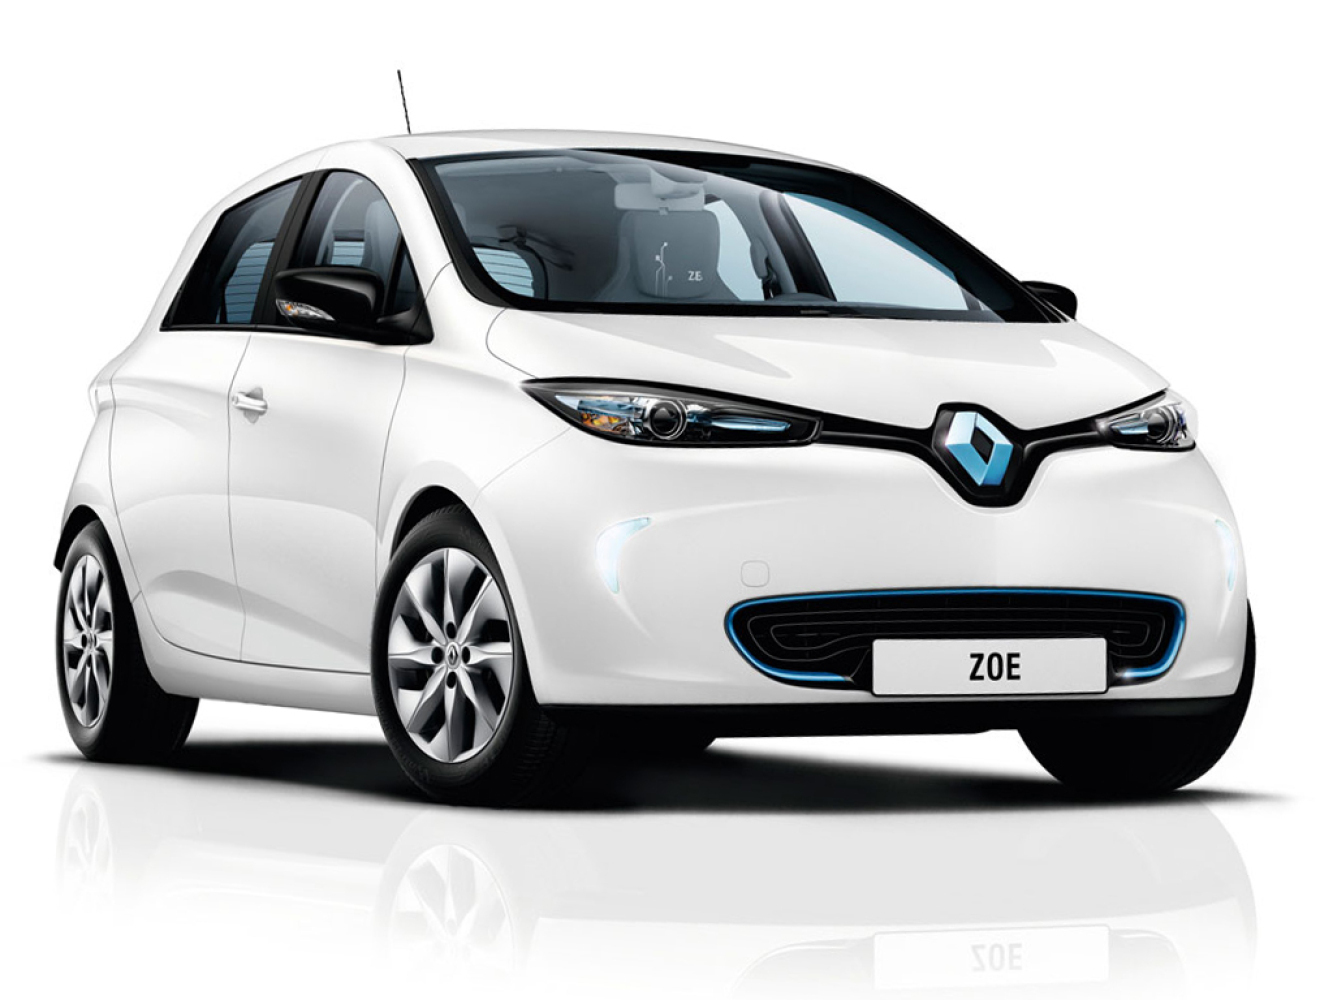 new renault zoe 65kw i dynamique nav q90 40kwh 5dr auto electric hatchback for sale bristol street. Black Bedroom Furniture Sets. Home Design Ideas